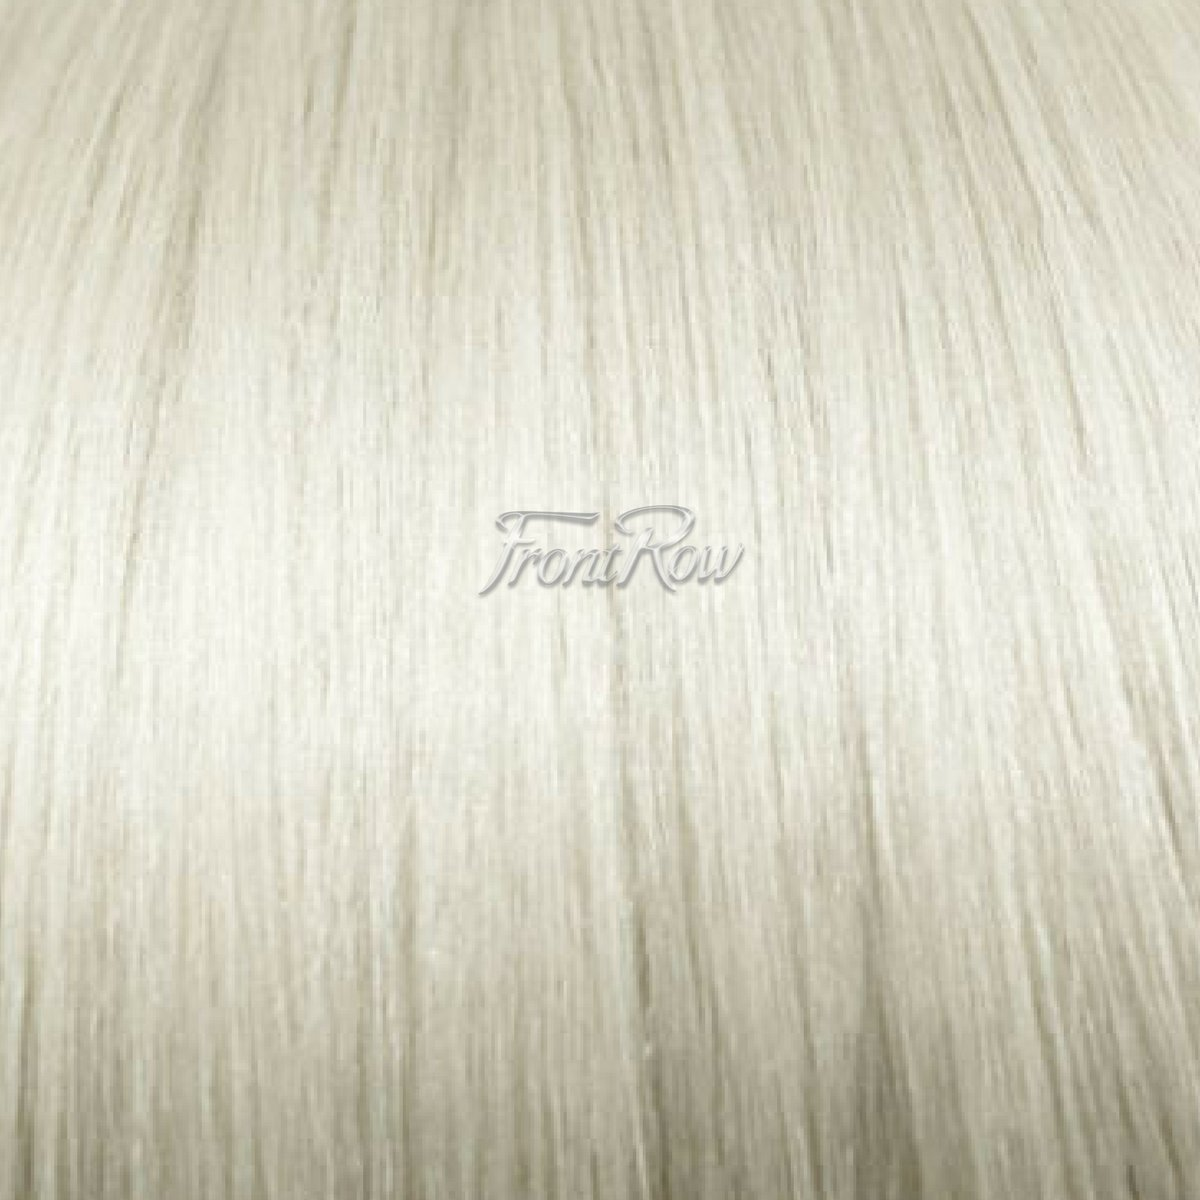 Platinum Blonde 20inch Tapered Ends Clip-ins